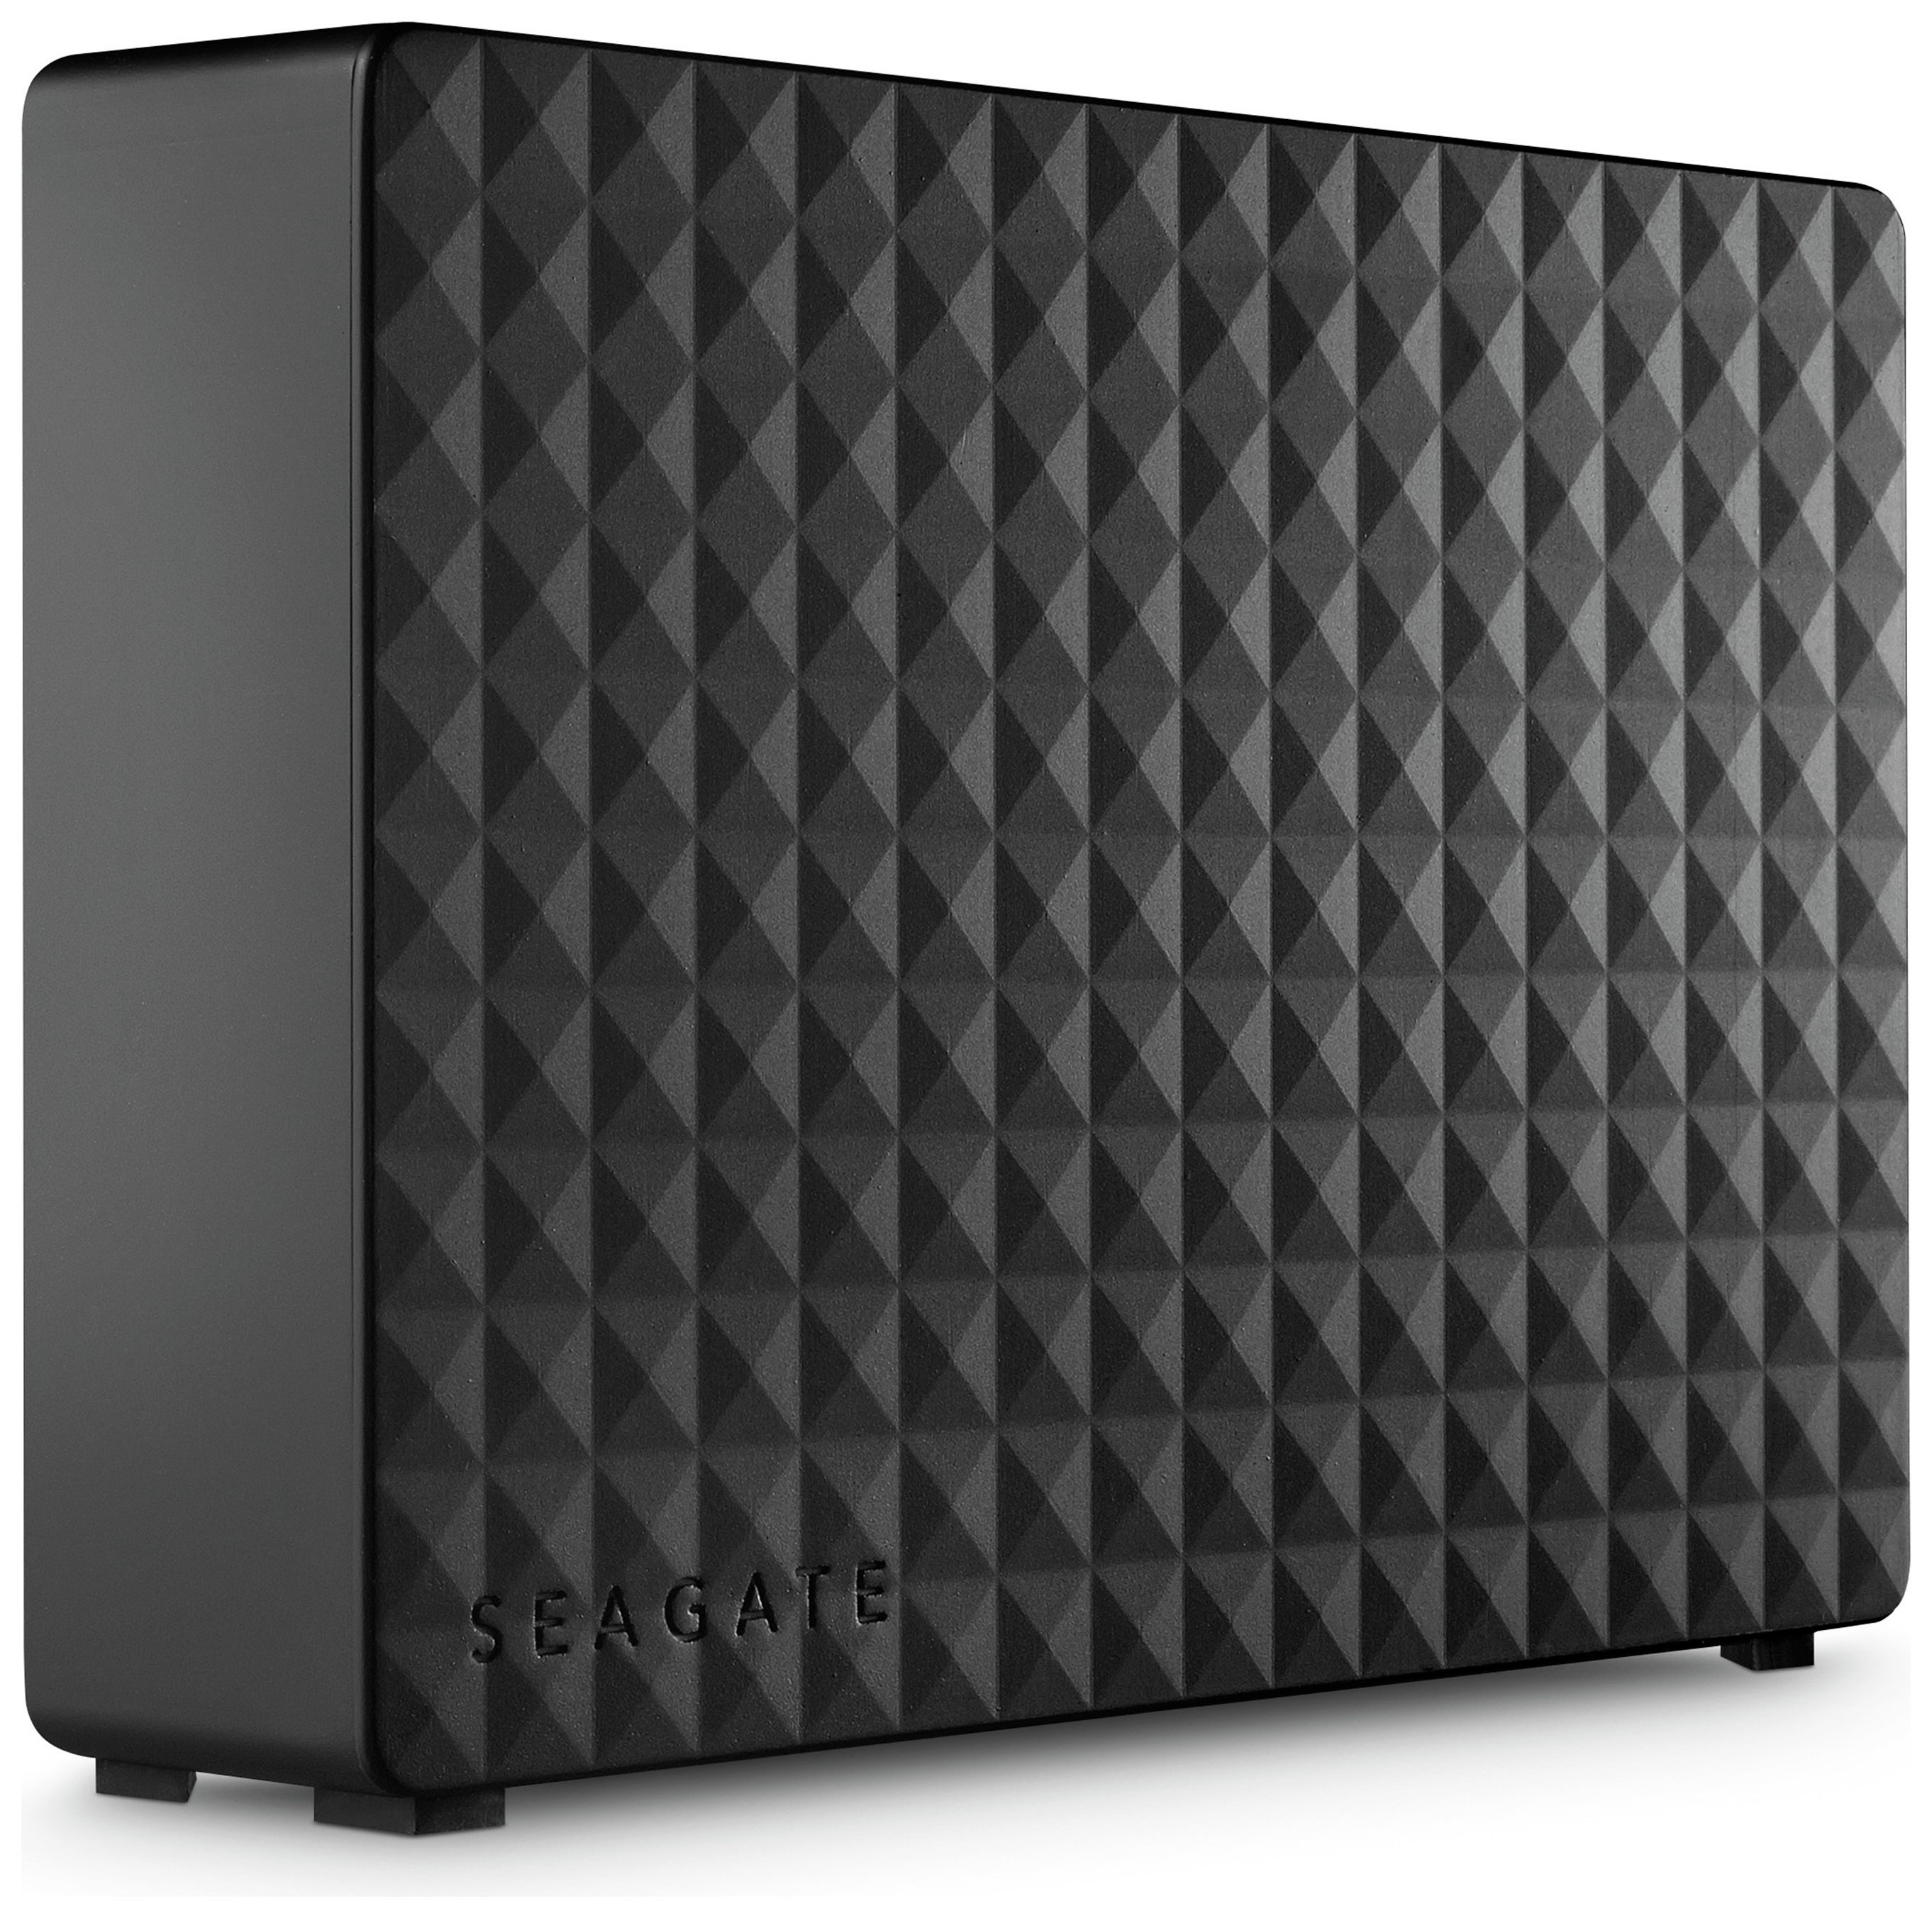 seagate-expansion-5tb-desktop-usb-30-hard-drive-black